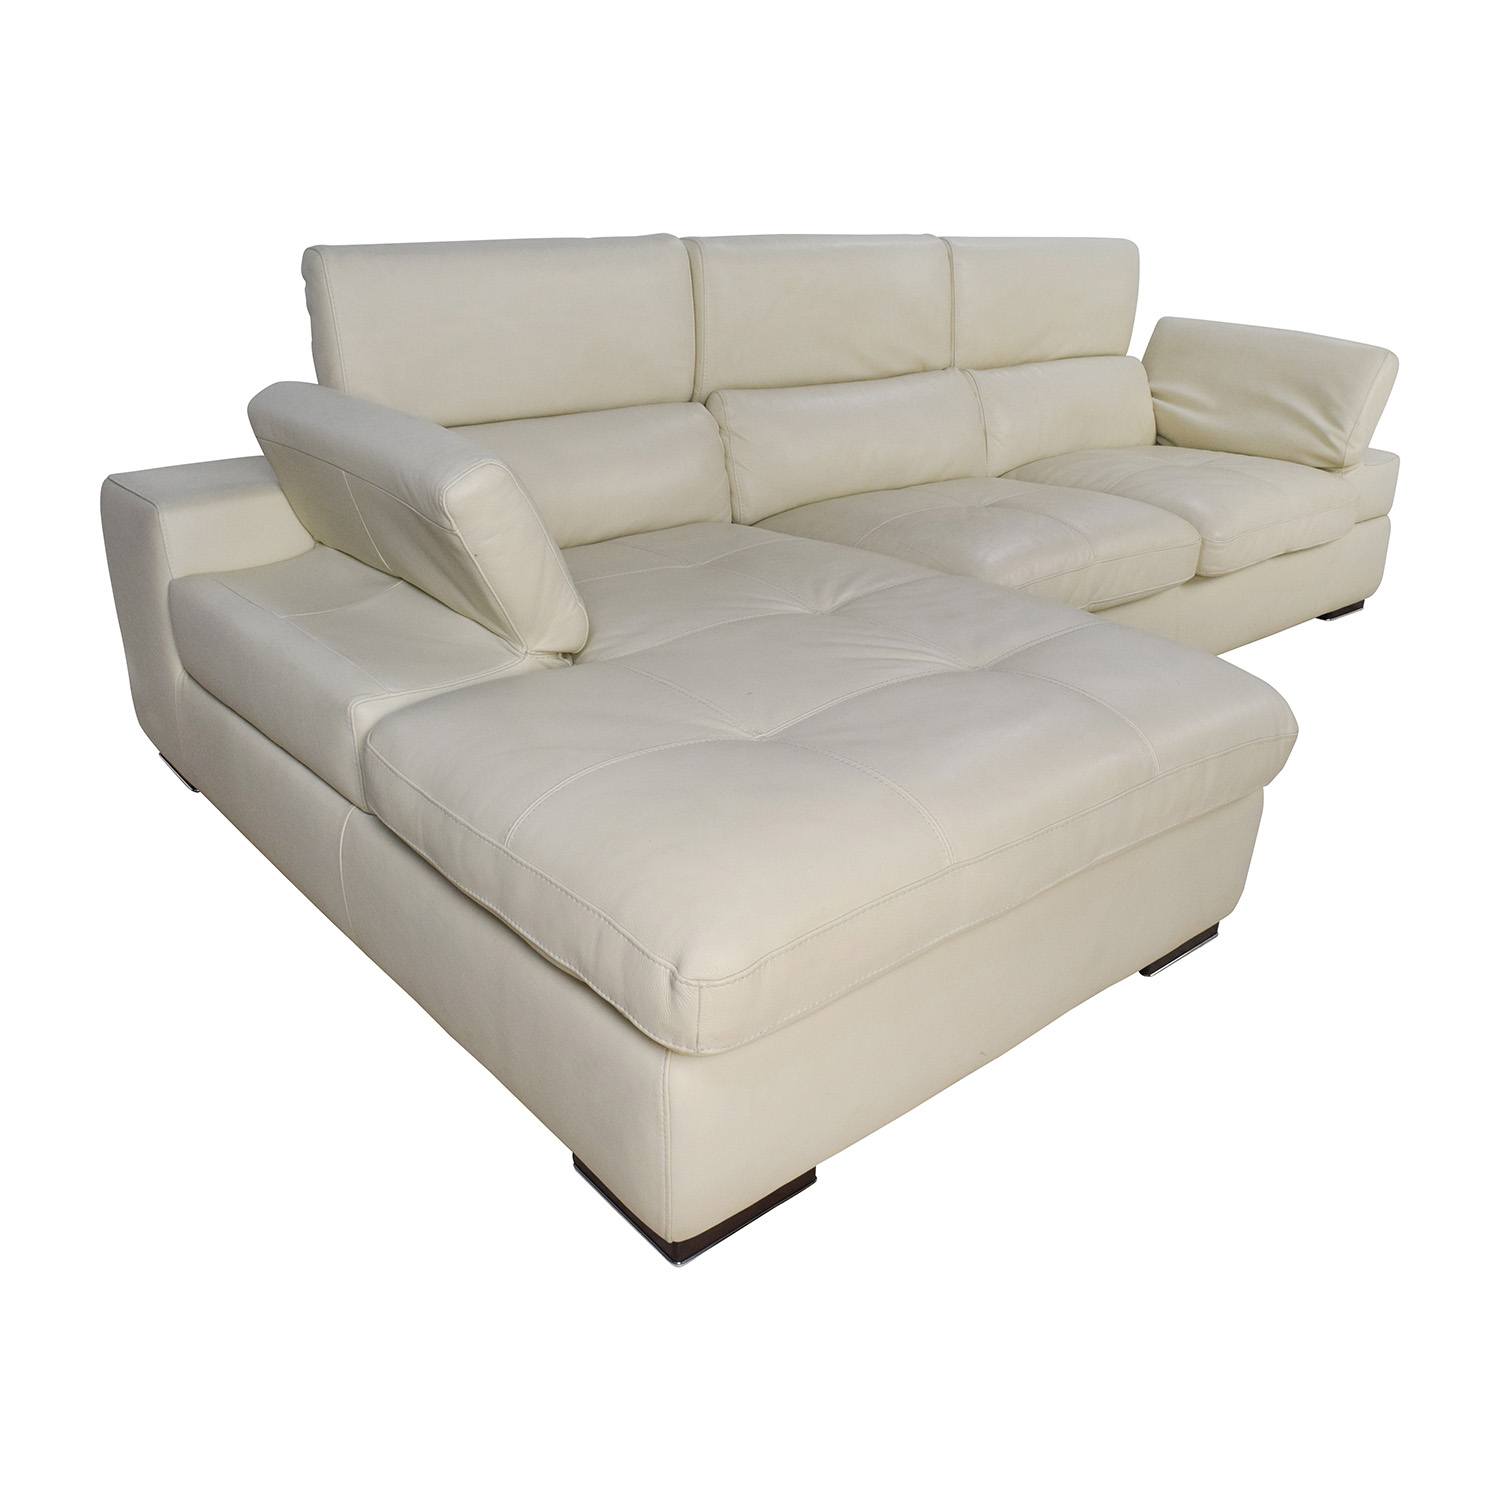 69 Off L Shaped Cream Leather Sectional Sofa Sofas .